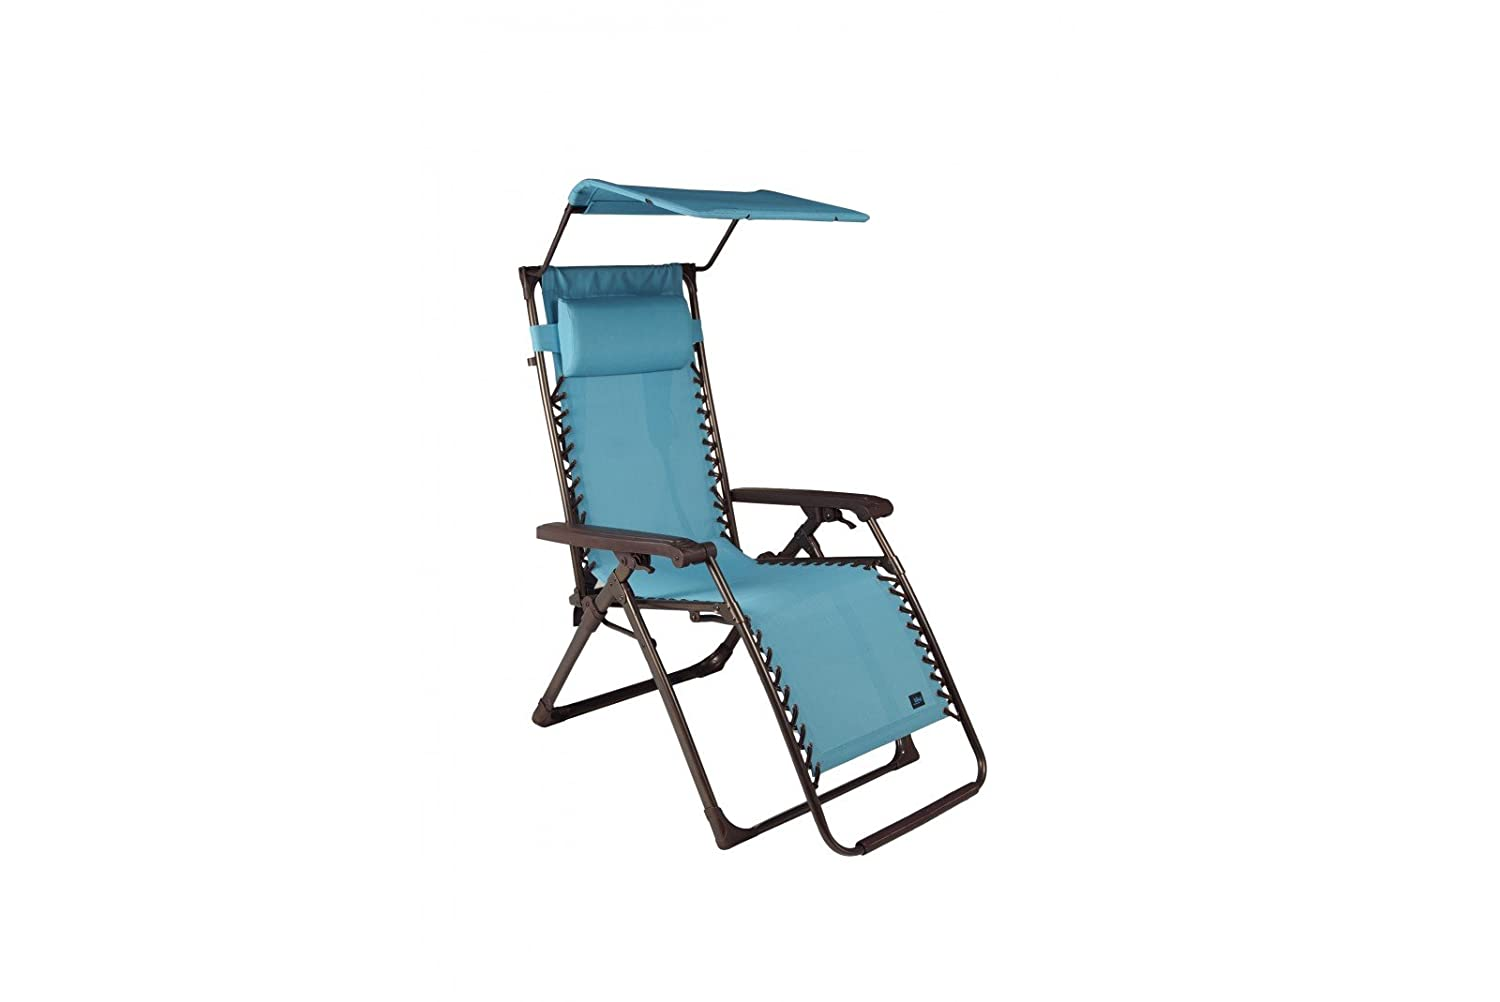 Amazon.com : Bliss Adjustable Reclining Outdoor Lounge Zero Gravity Chair  With Headrest : Garden U0026 Outdoor